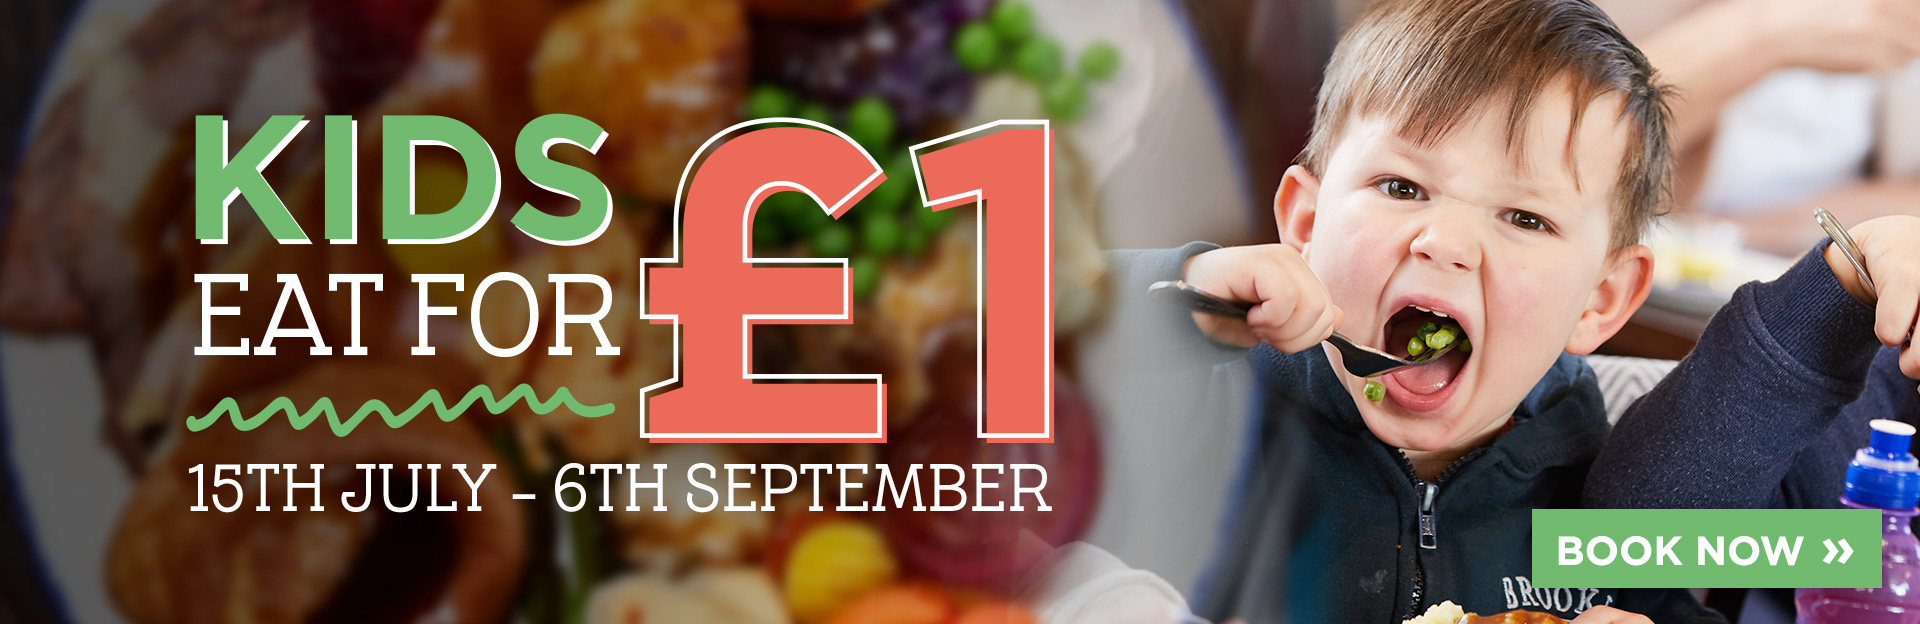 Kids eat for £1 at The Swan Hotel